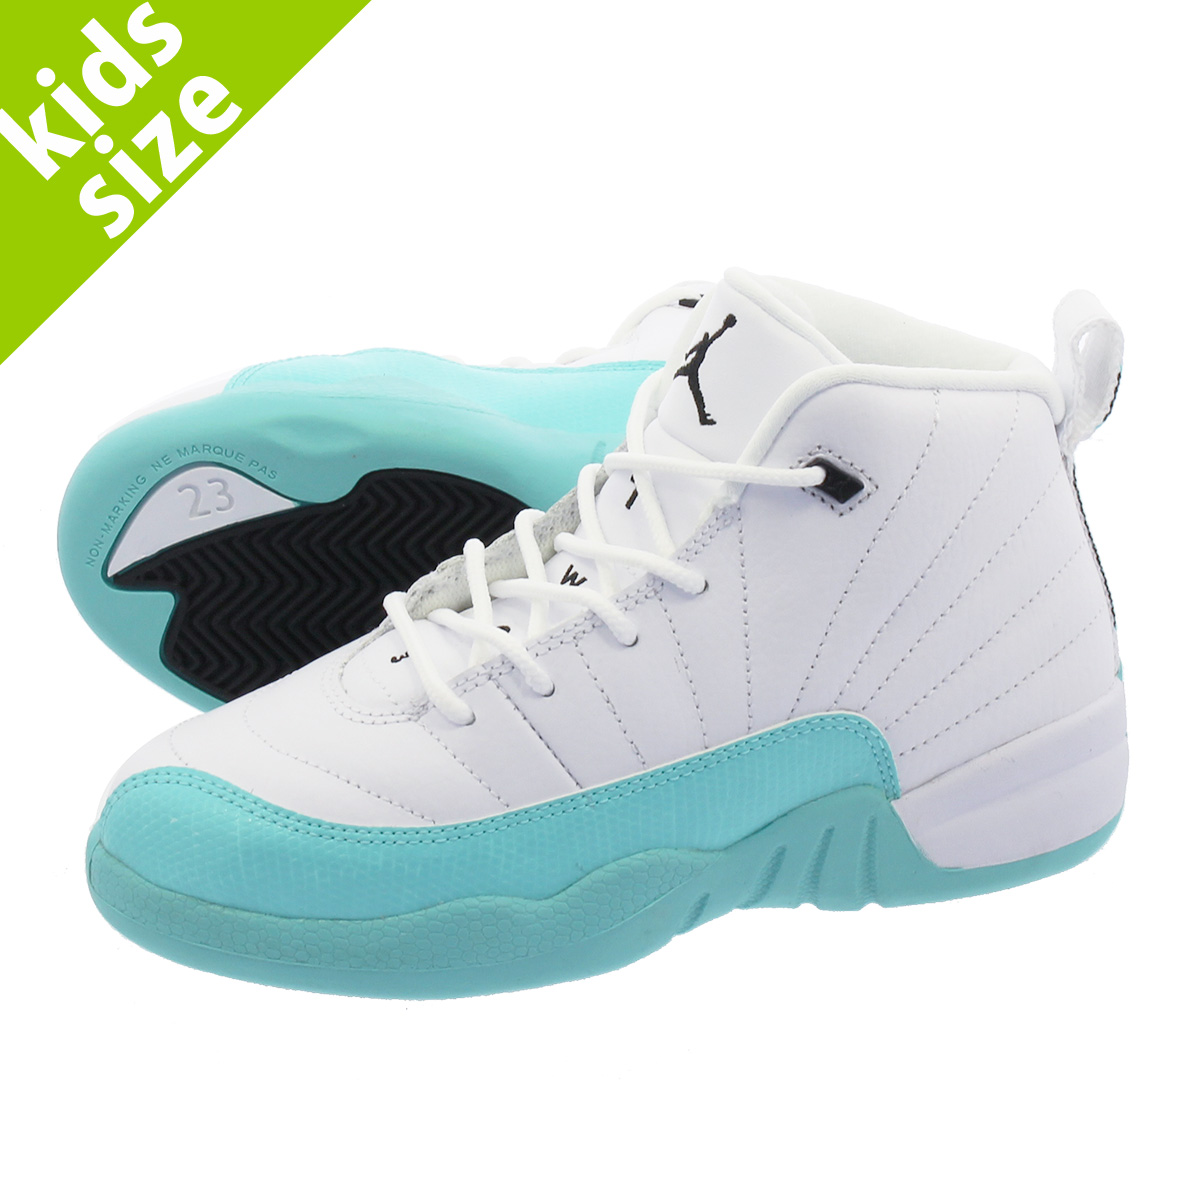 b4ce87e4bdc453 NIKE AIR JORDAN 12 RETRO PS Nike Air Jordan 12 nostalgic PS WHITE LIGHT AQUA BLACK  510